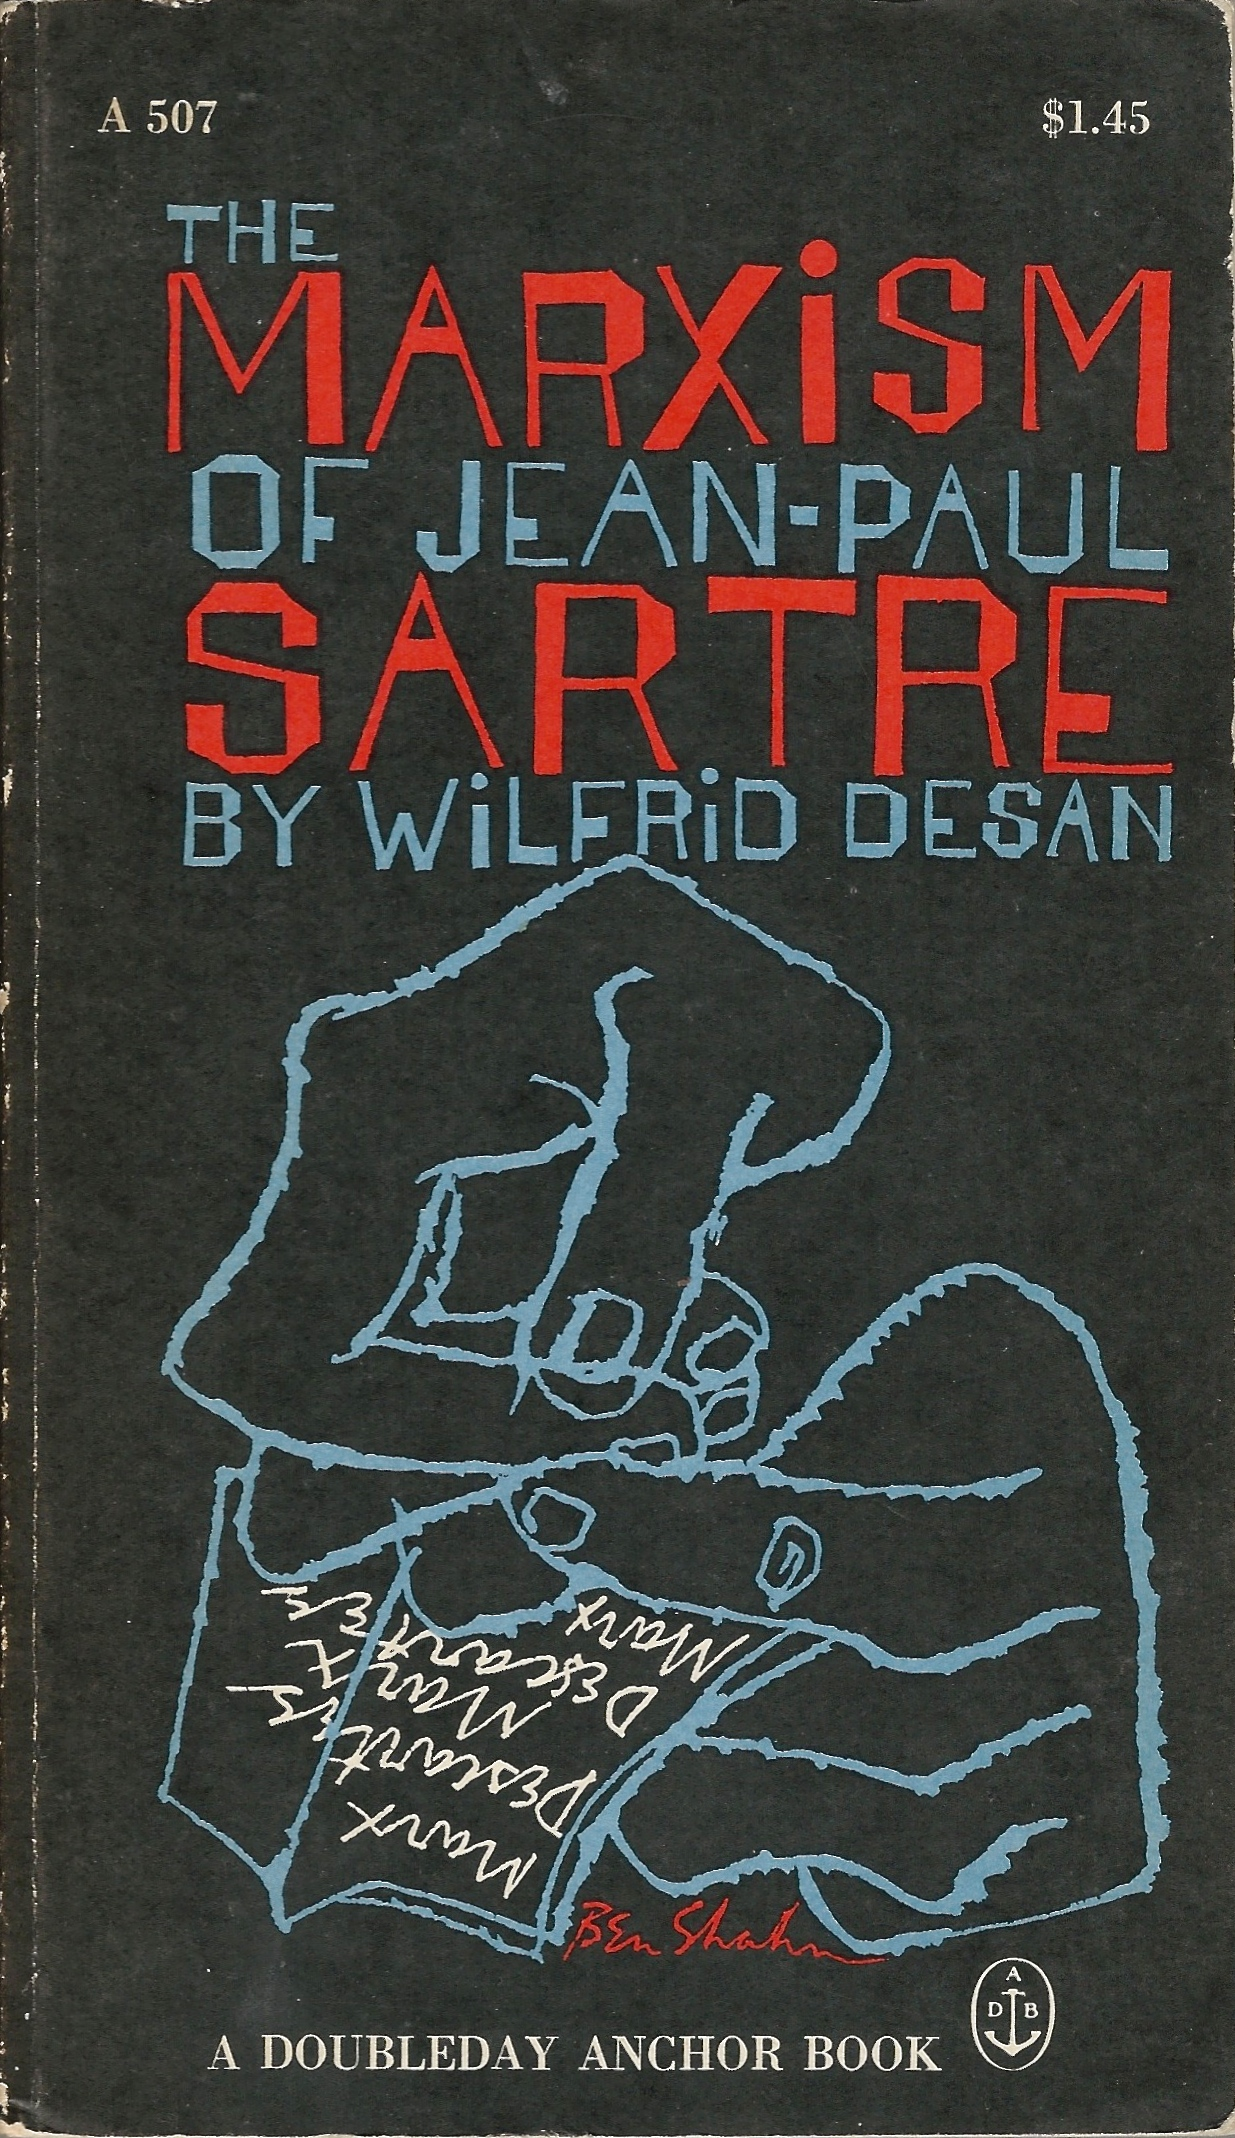 The Marxism of Jean-Paul Sartre by Wilfred Desan. A Doubleday Anchor Book 1966